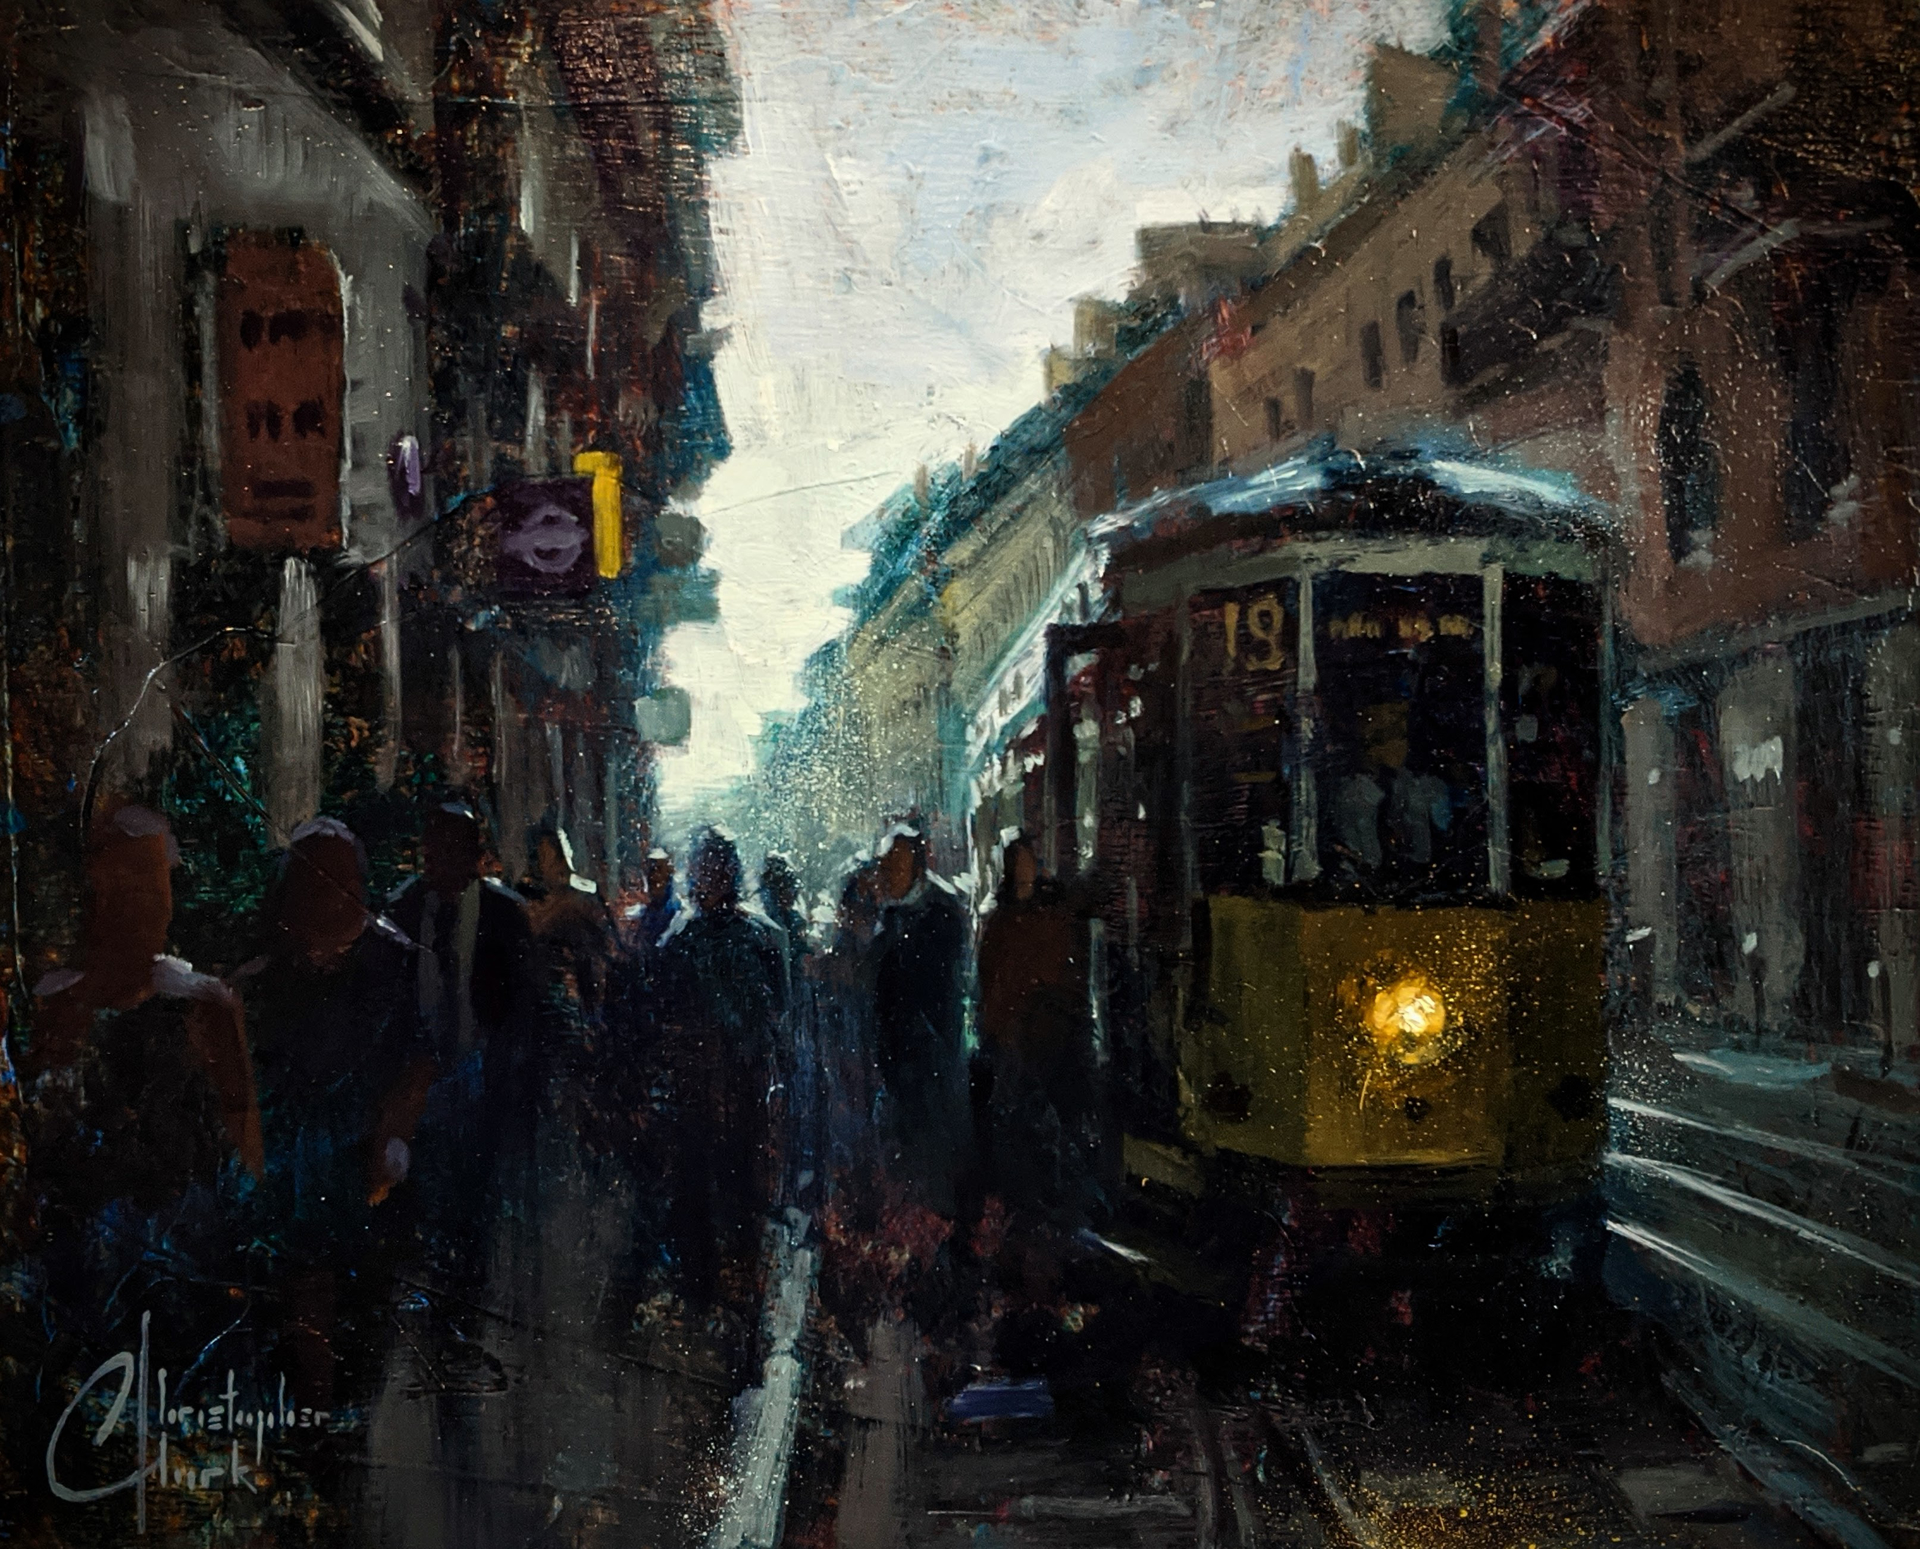 Milan, Italy - Early Morning Trolley by Christopher Clark